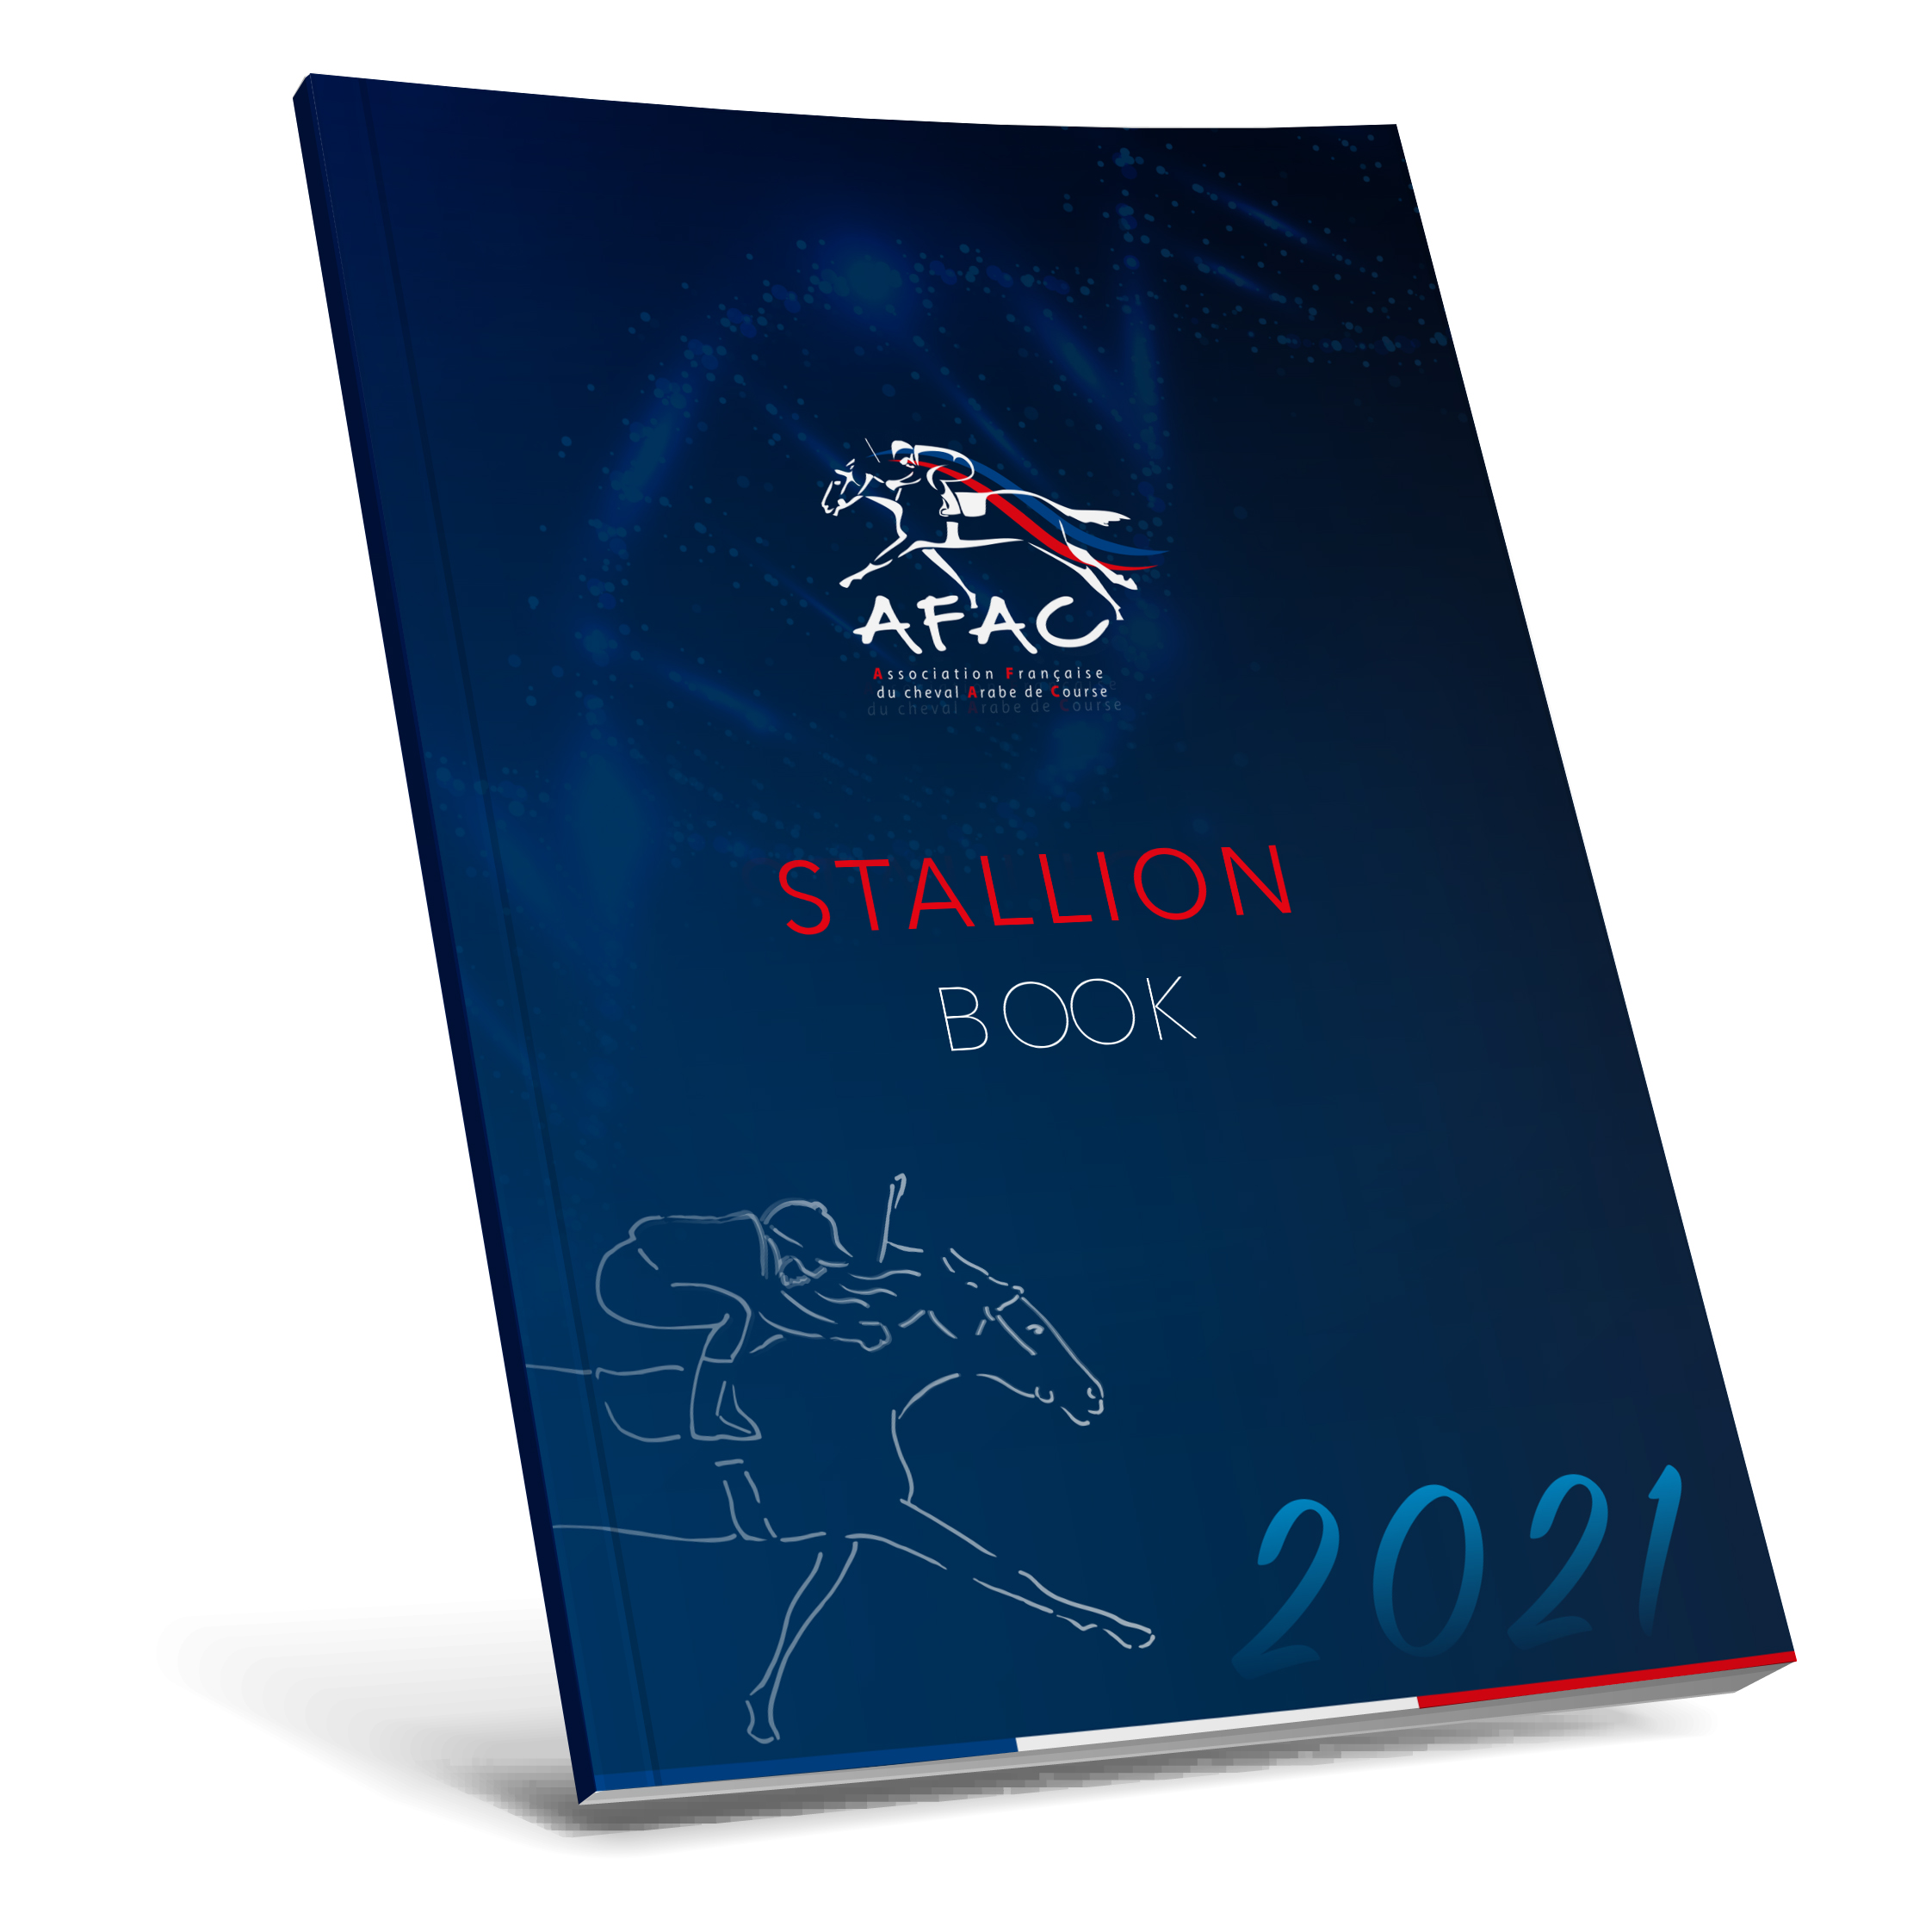 L'AFAC publie son Stallion Book